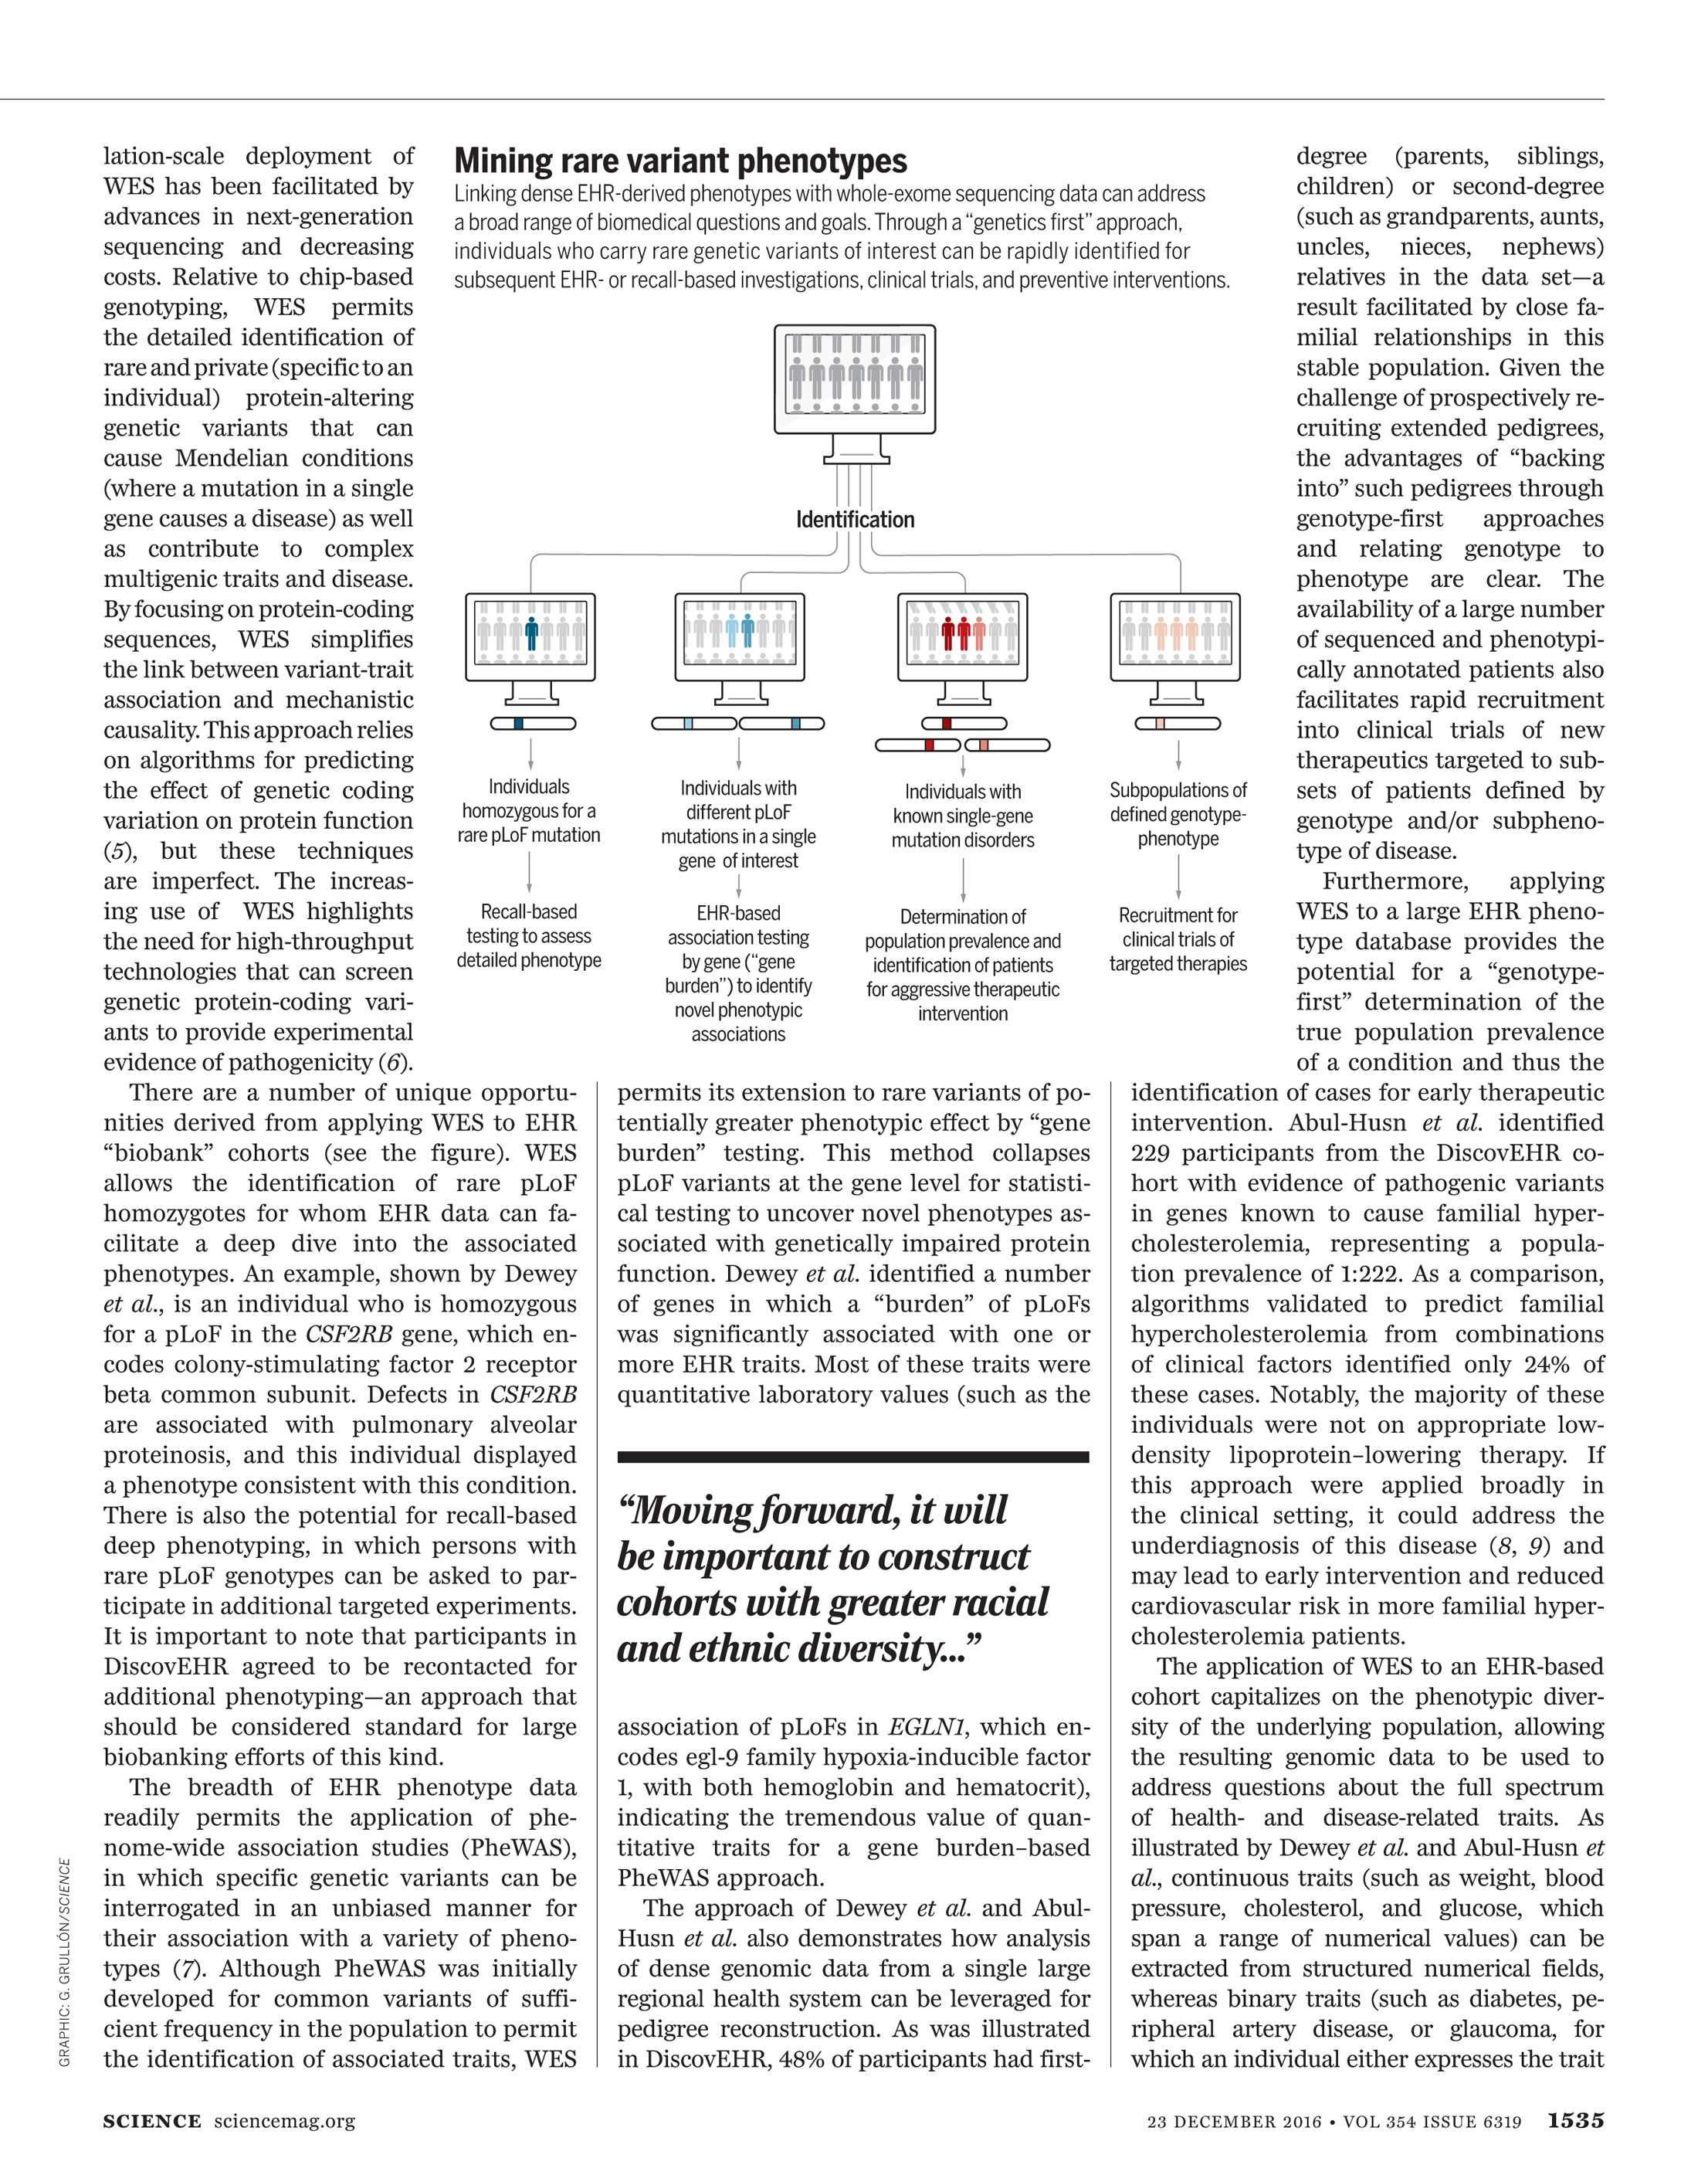 Science Magazine 23 December 2016 Page 1535